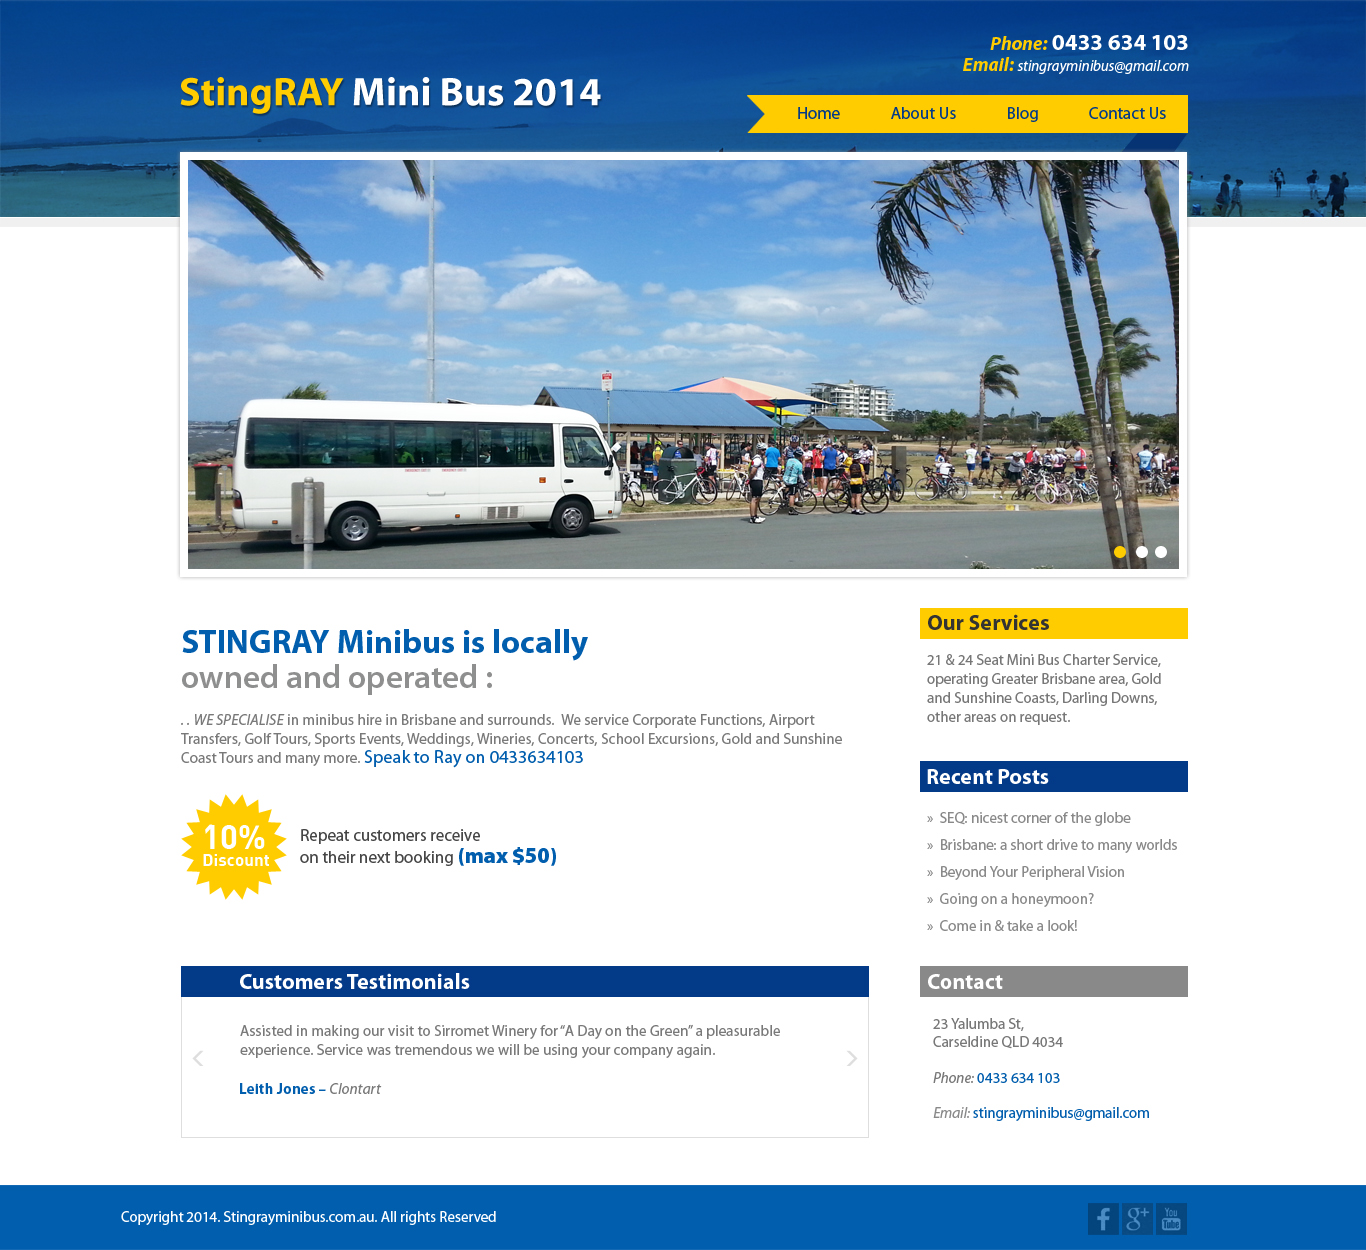 https://webmate.com.au/wp-content/uploads/2016/06/Stingray-Minibus.jpg